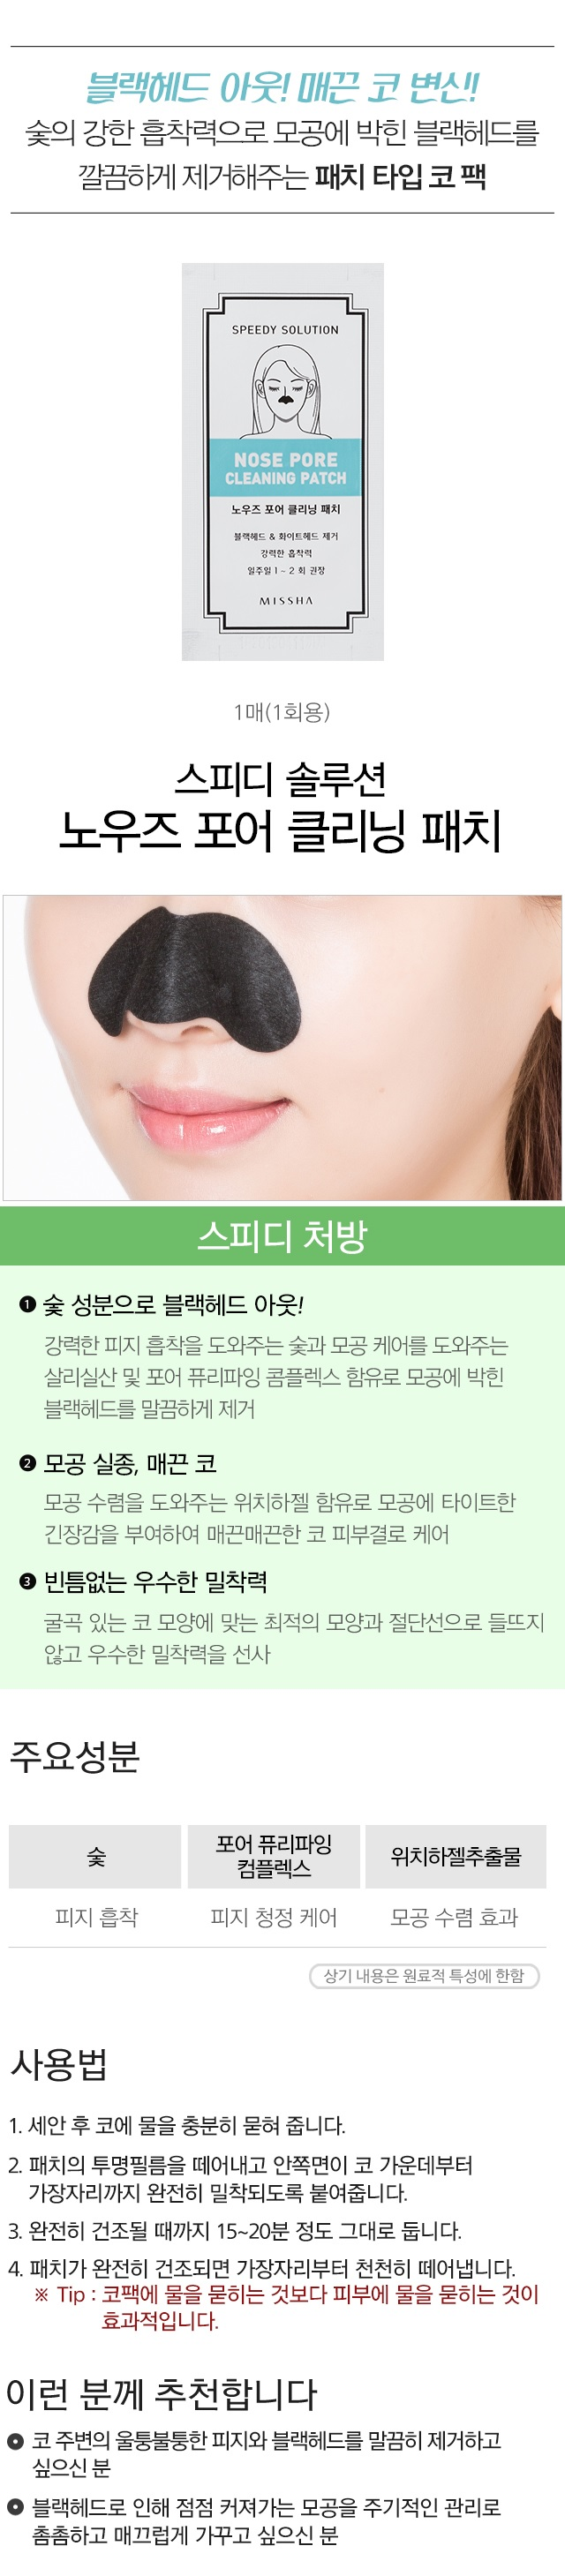 Missha Speedy Solution Nose Pore Cleaning Patch Set korean cosmetic skincare product online shop malaysia usa thailand1